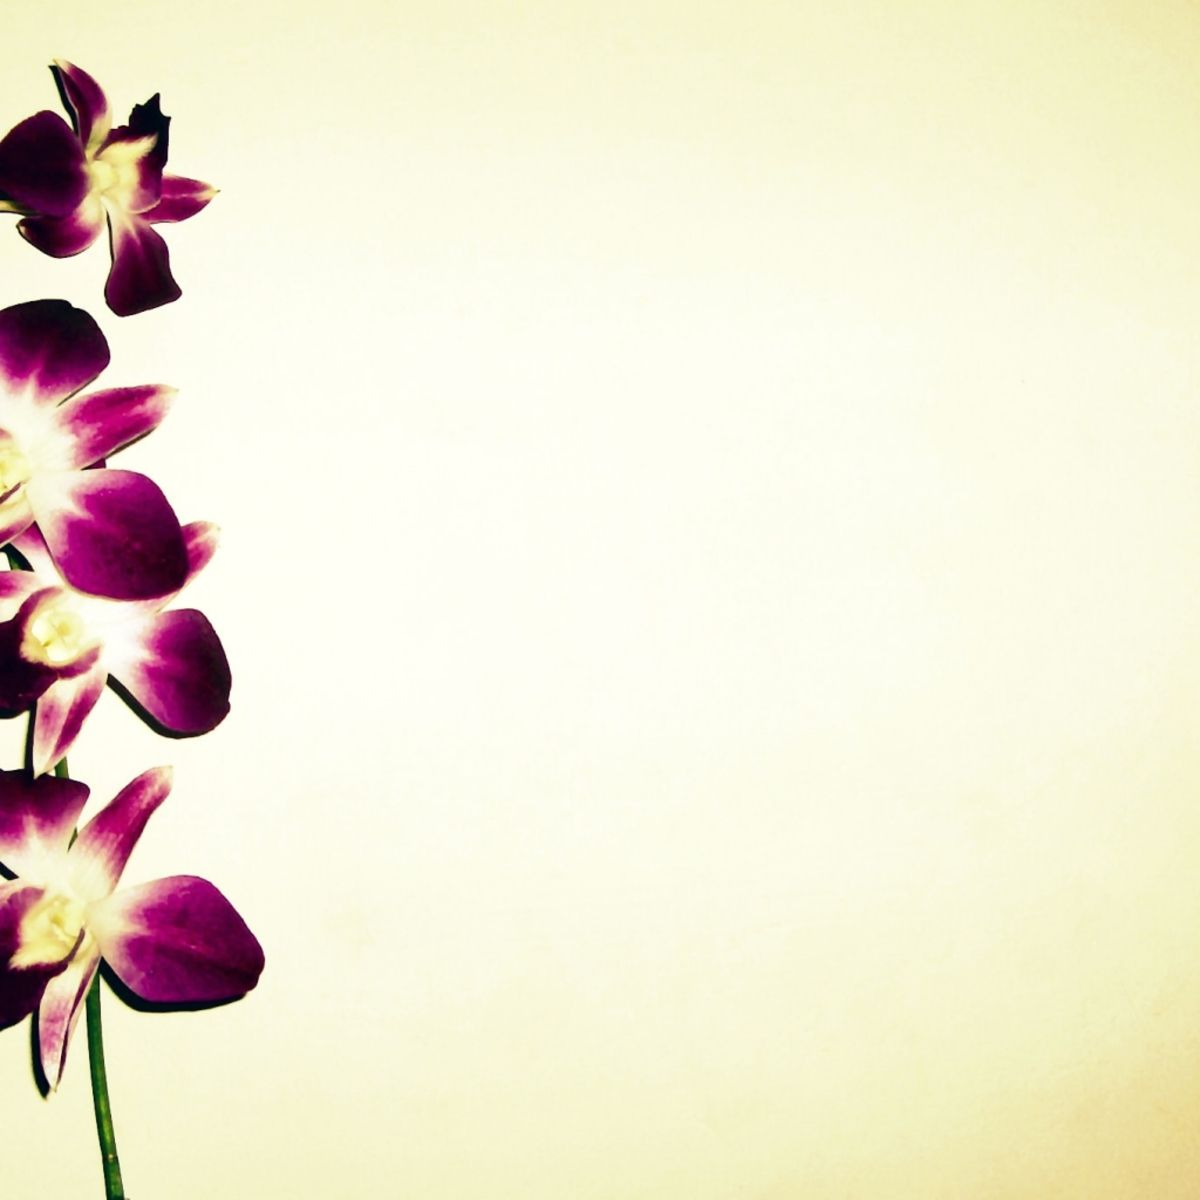 1600x1200-orchid-background.jpg (1200×1200)